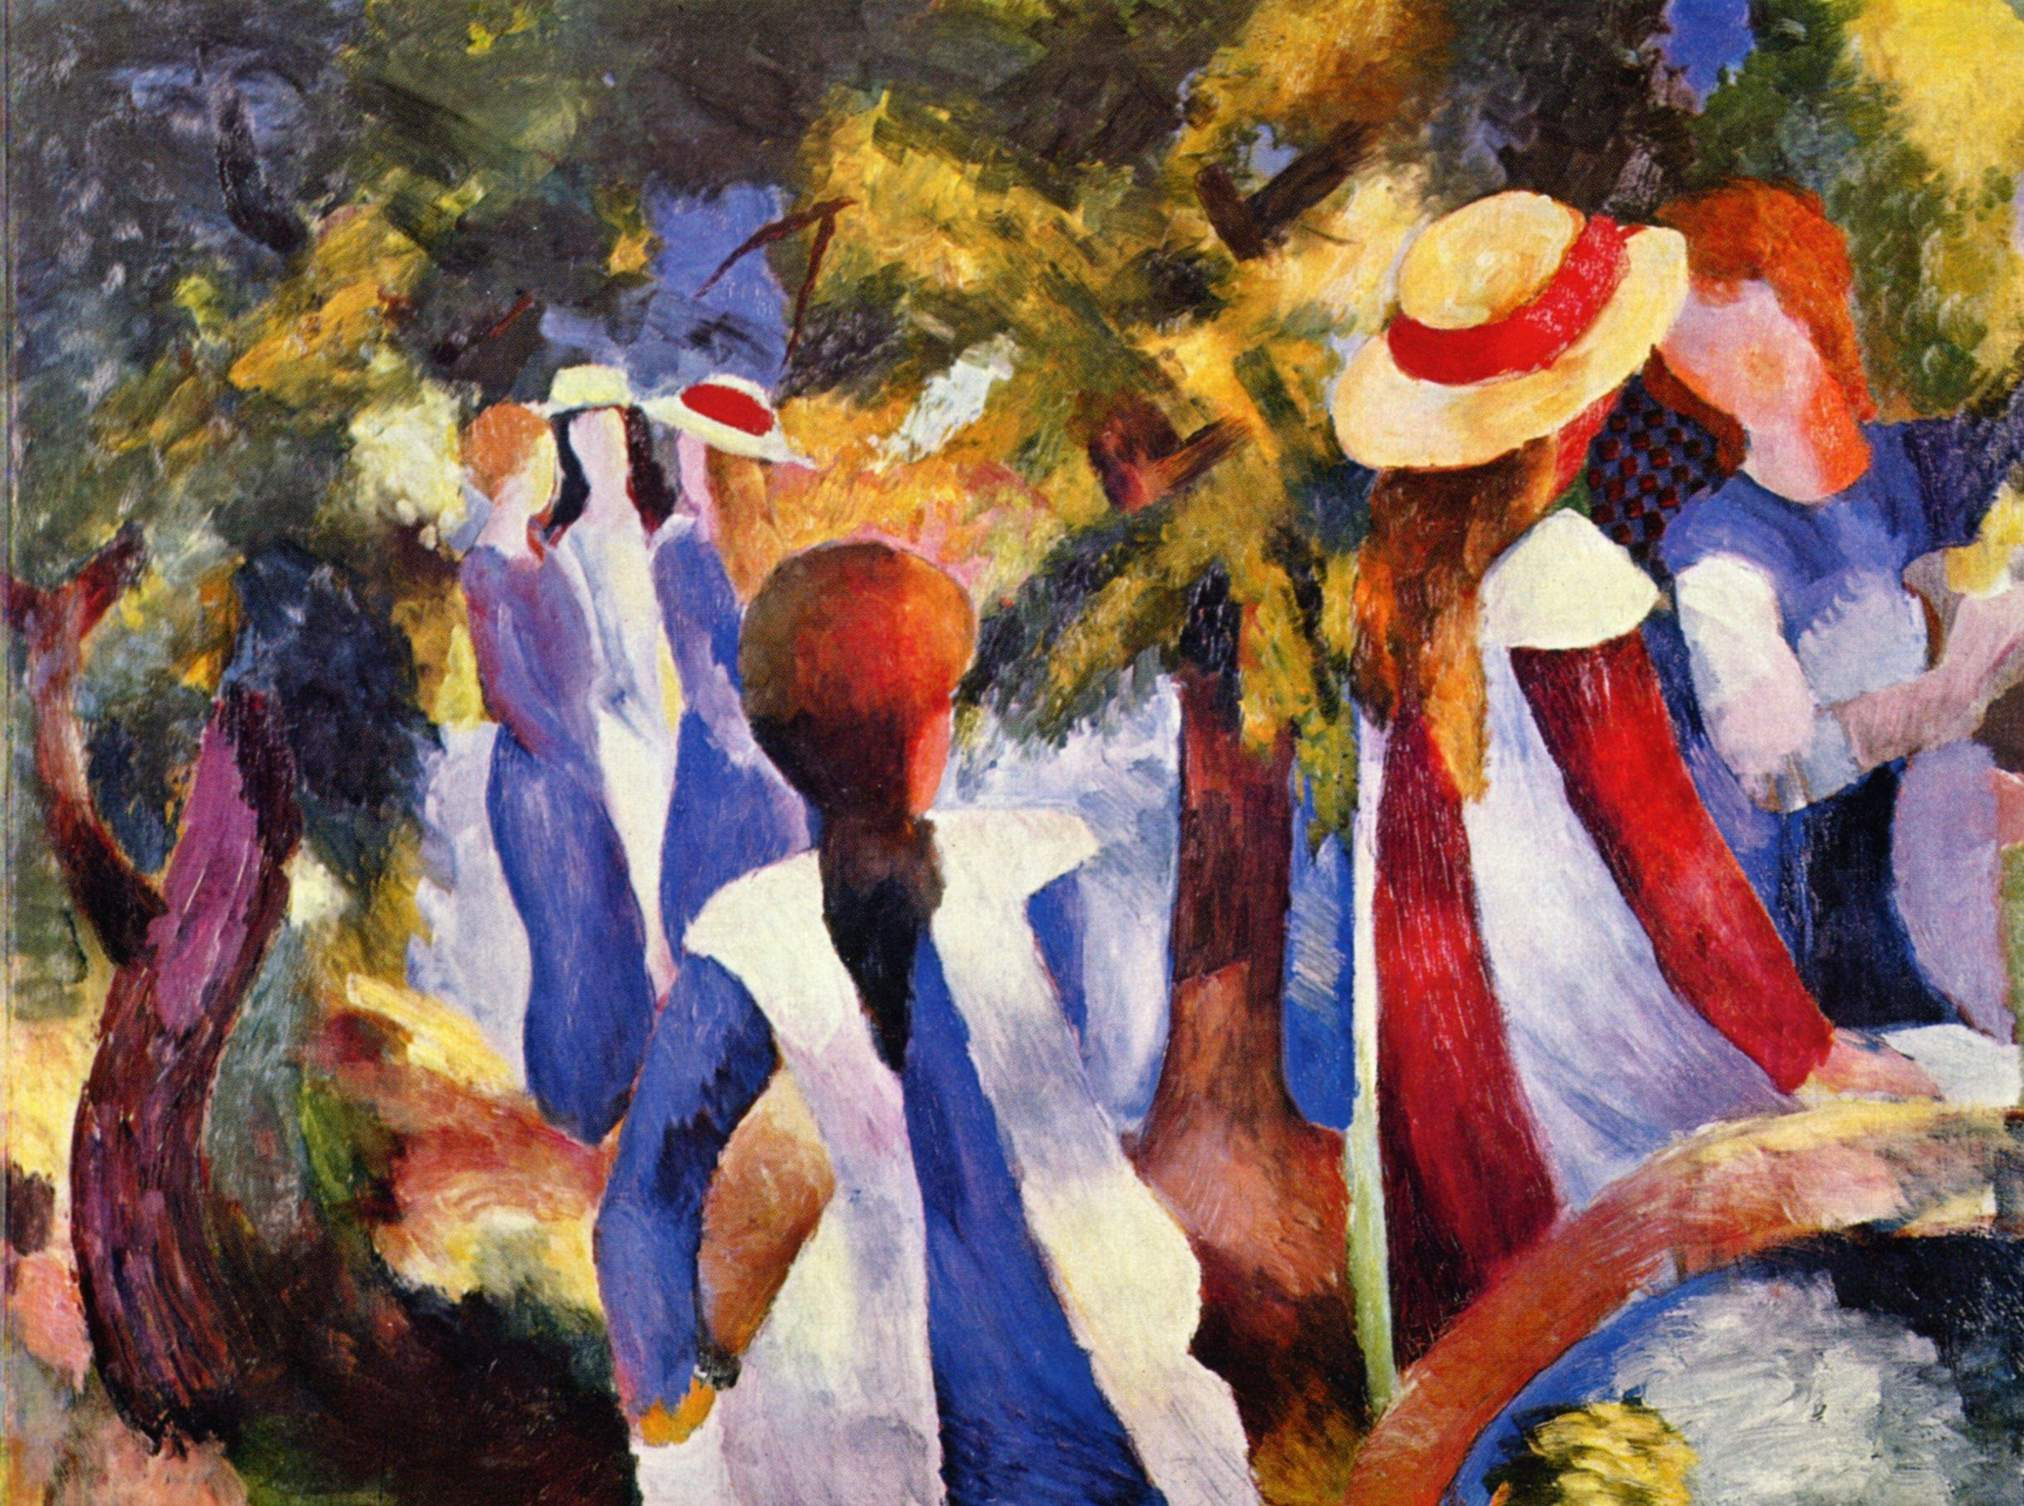 expressionism in art Expressionism - in quotes expressionism was a modernist movement, initially in poetry and painting, originating in germany at the beginning of the 20th century.